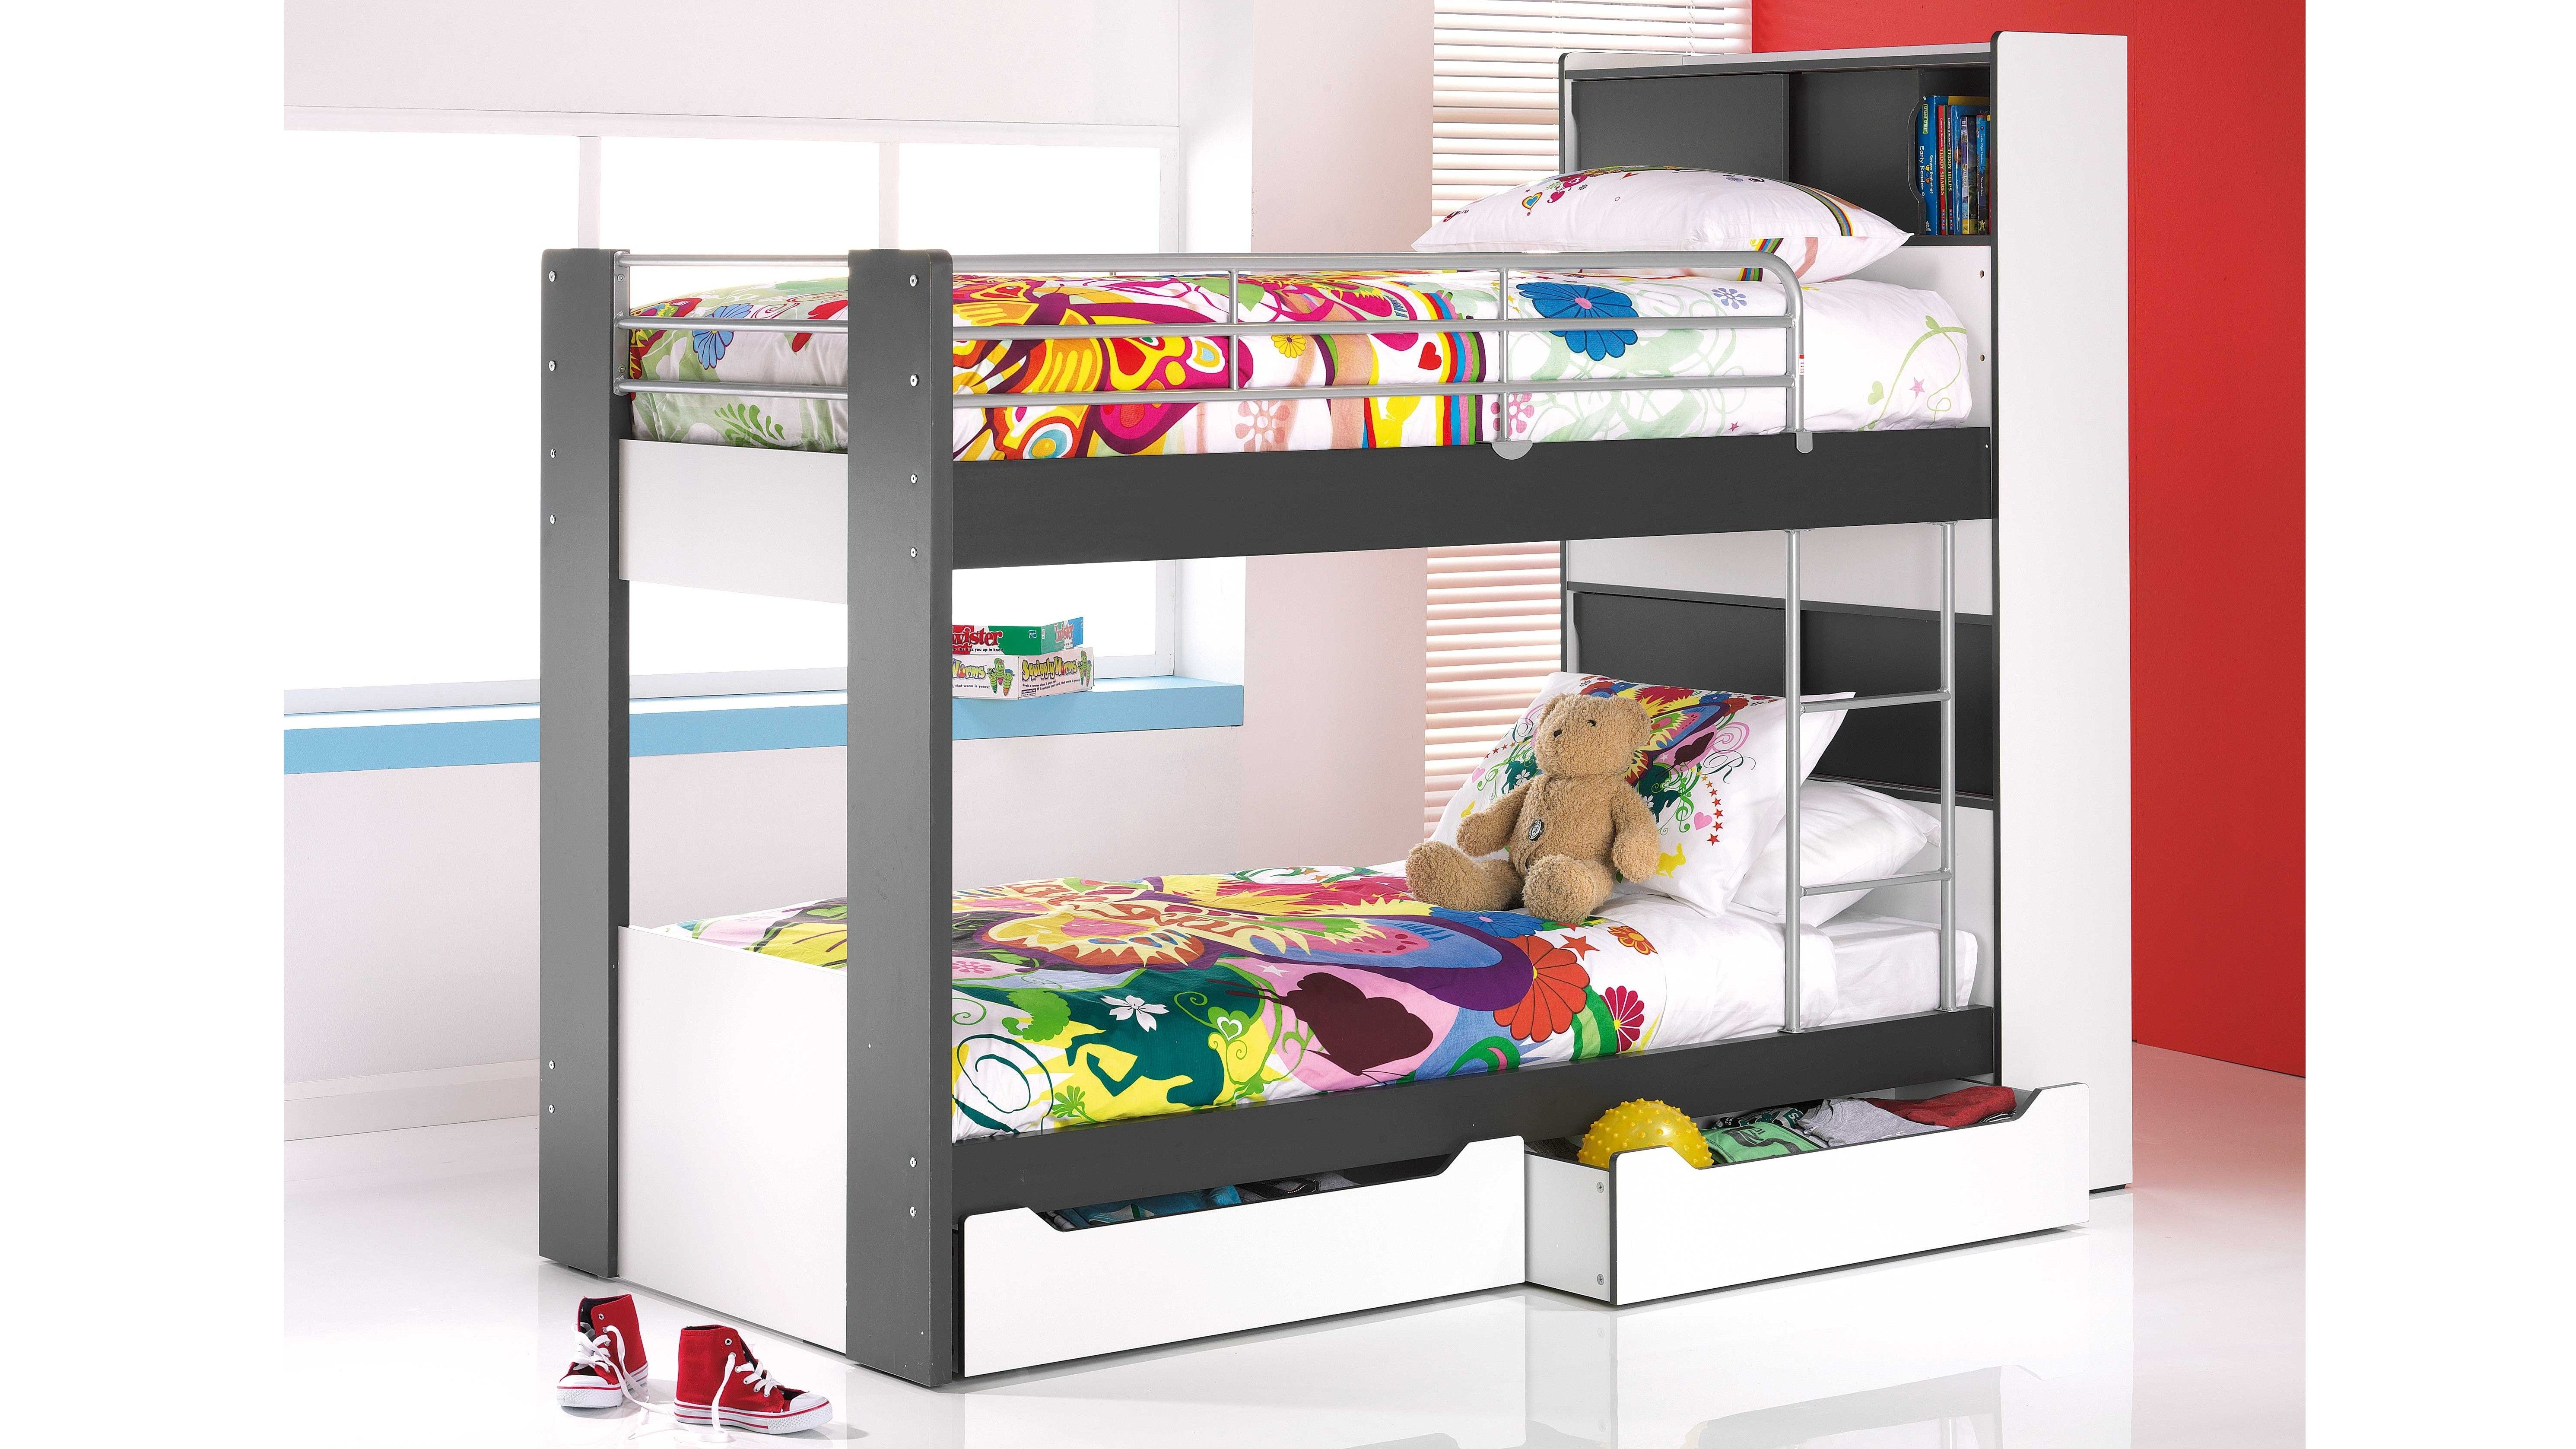 Montana Single Bunk Bed with Storage Single bunk bed